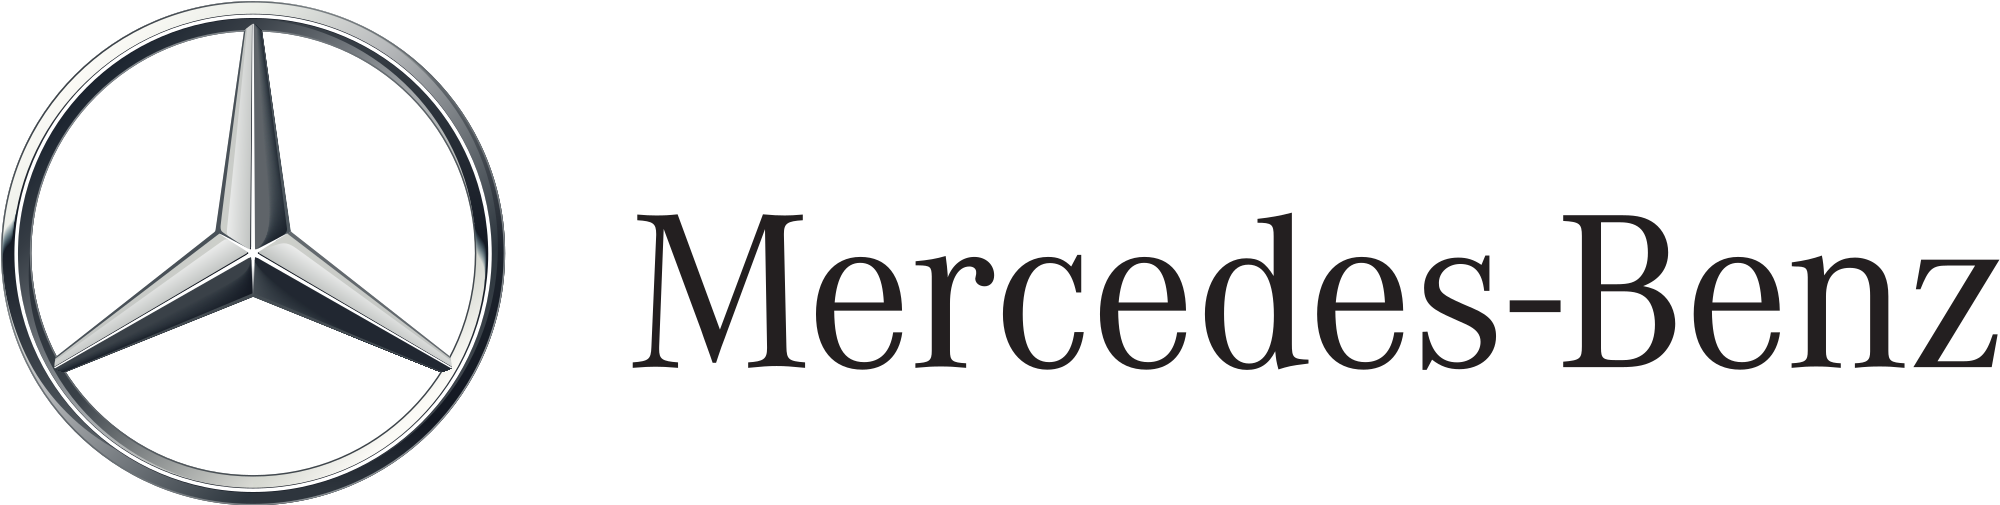 Mercedes benz logo png. File svg wikimedia commons